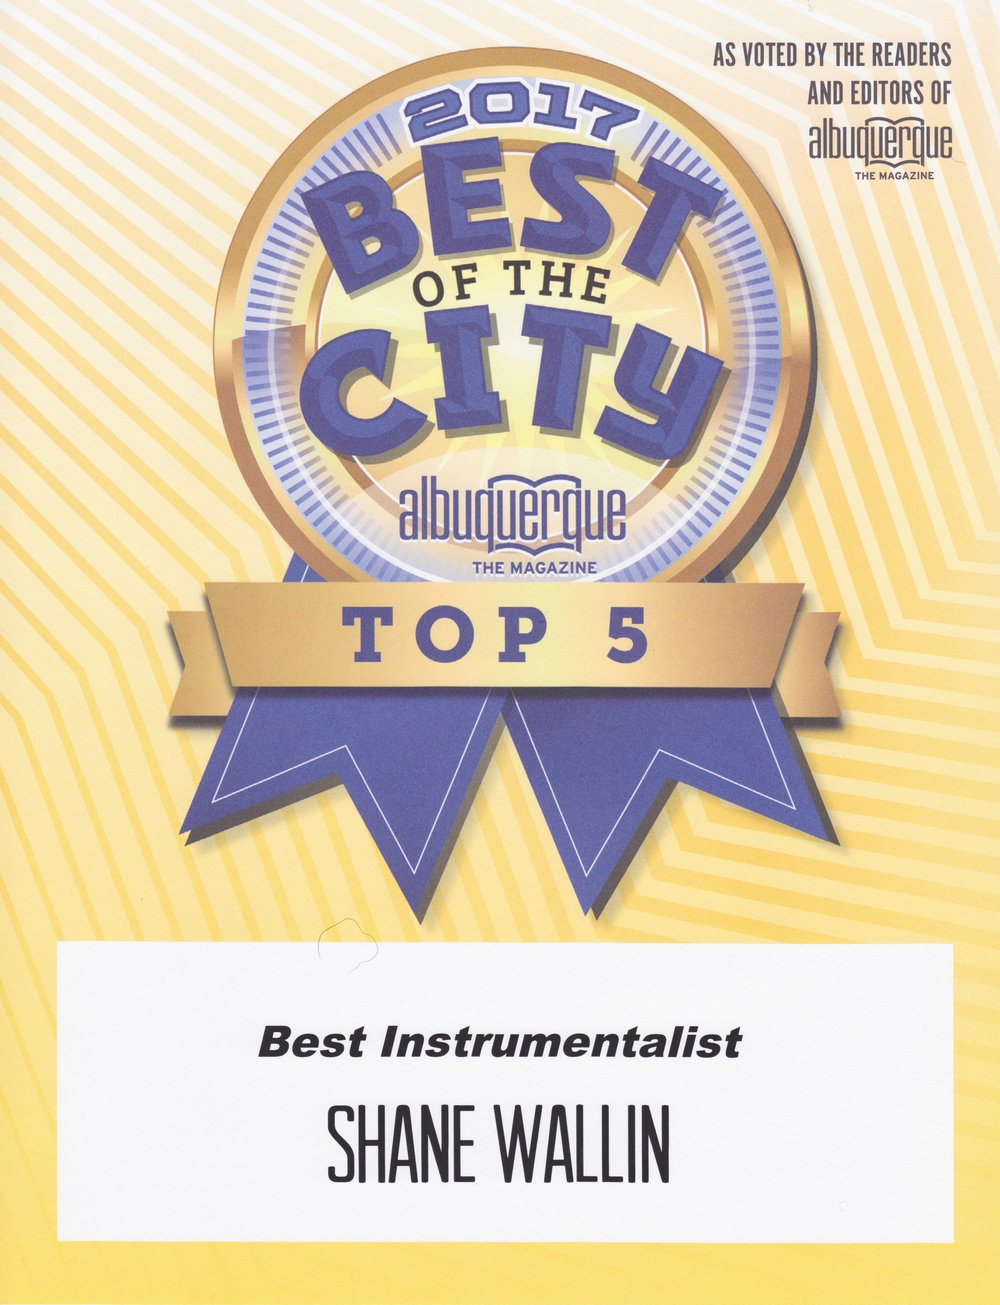 TOP INSTRUMENTALISTS 2017, NEW MEXICO by ALBUQUERQUE THE MAGAZINE.